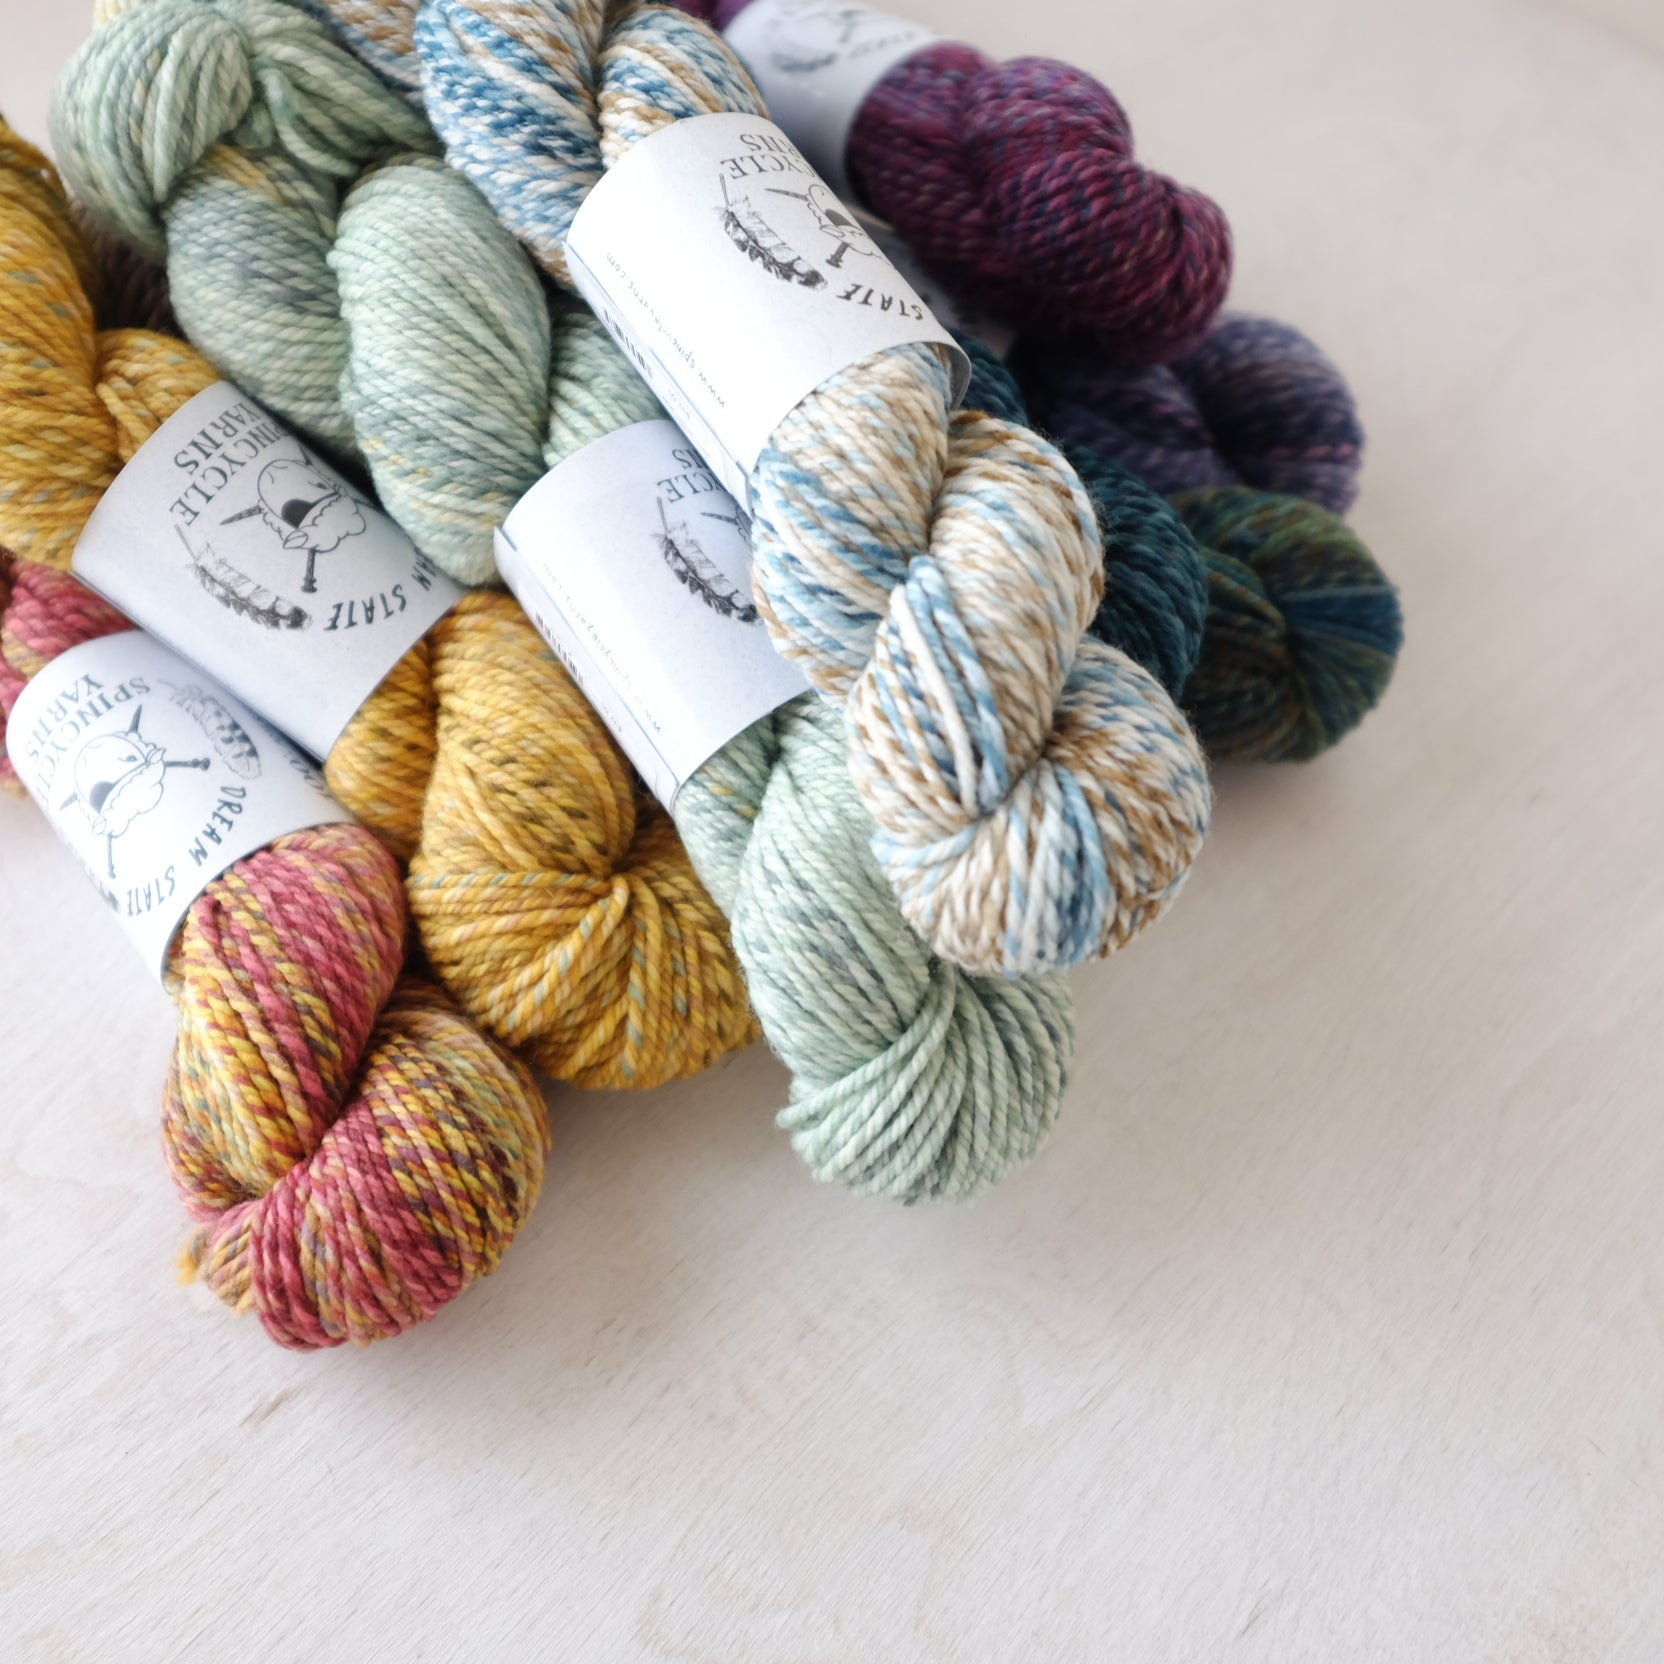 Spincycle Yarns - Dream State - Just restocked!